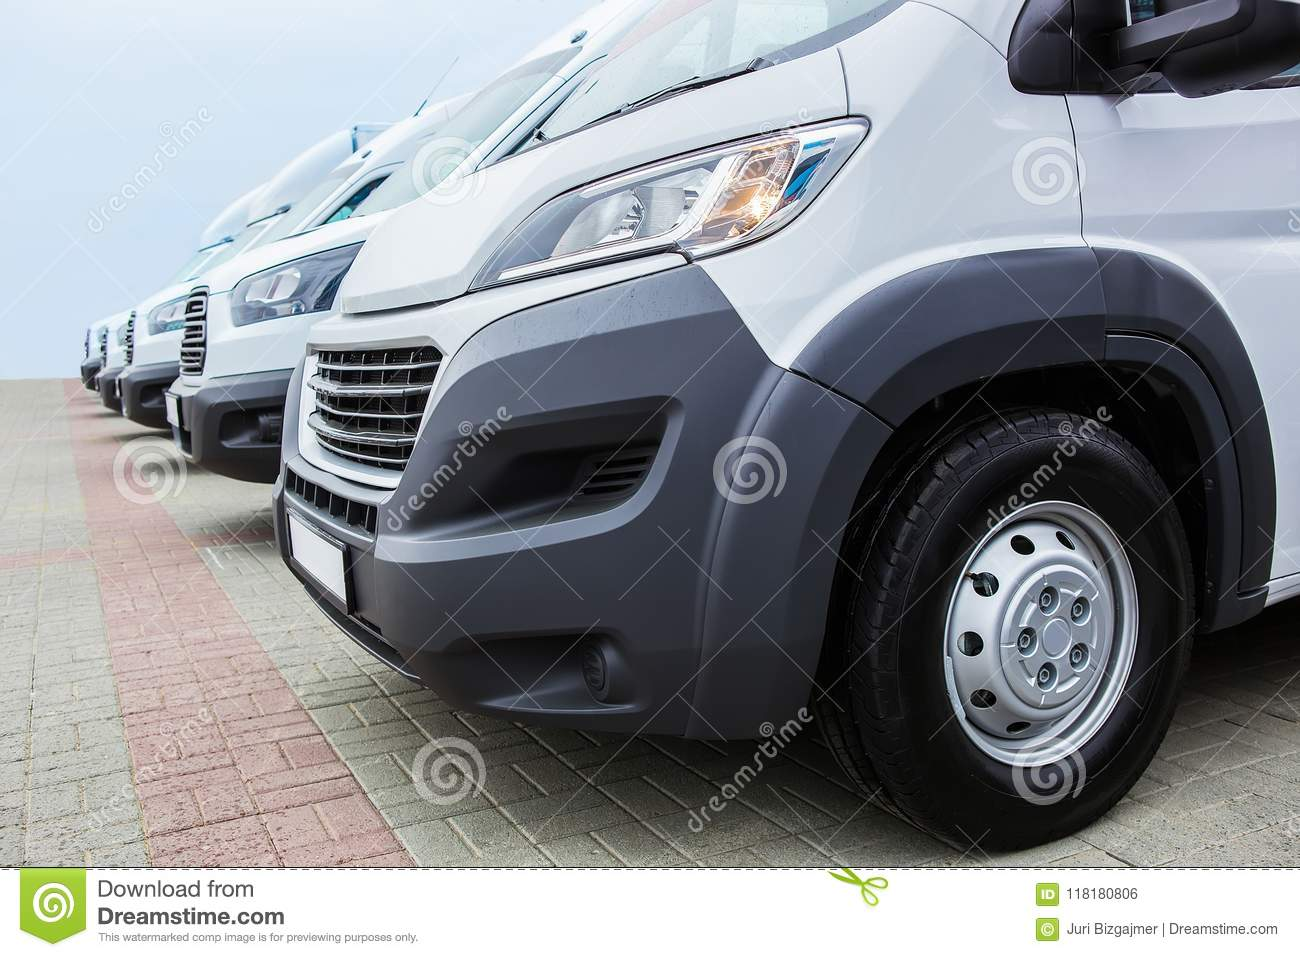 3b1b1e47d5 Minibuses and vans outside stock photo. Image of backgrounds - 118180806